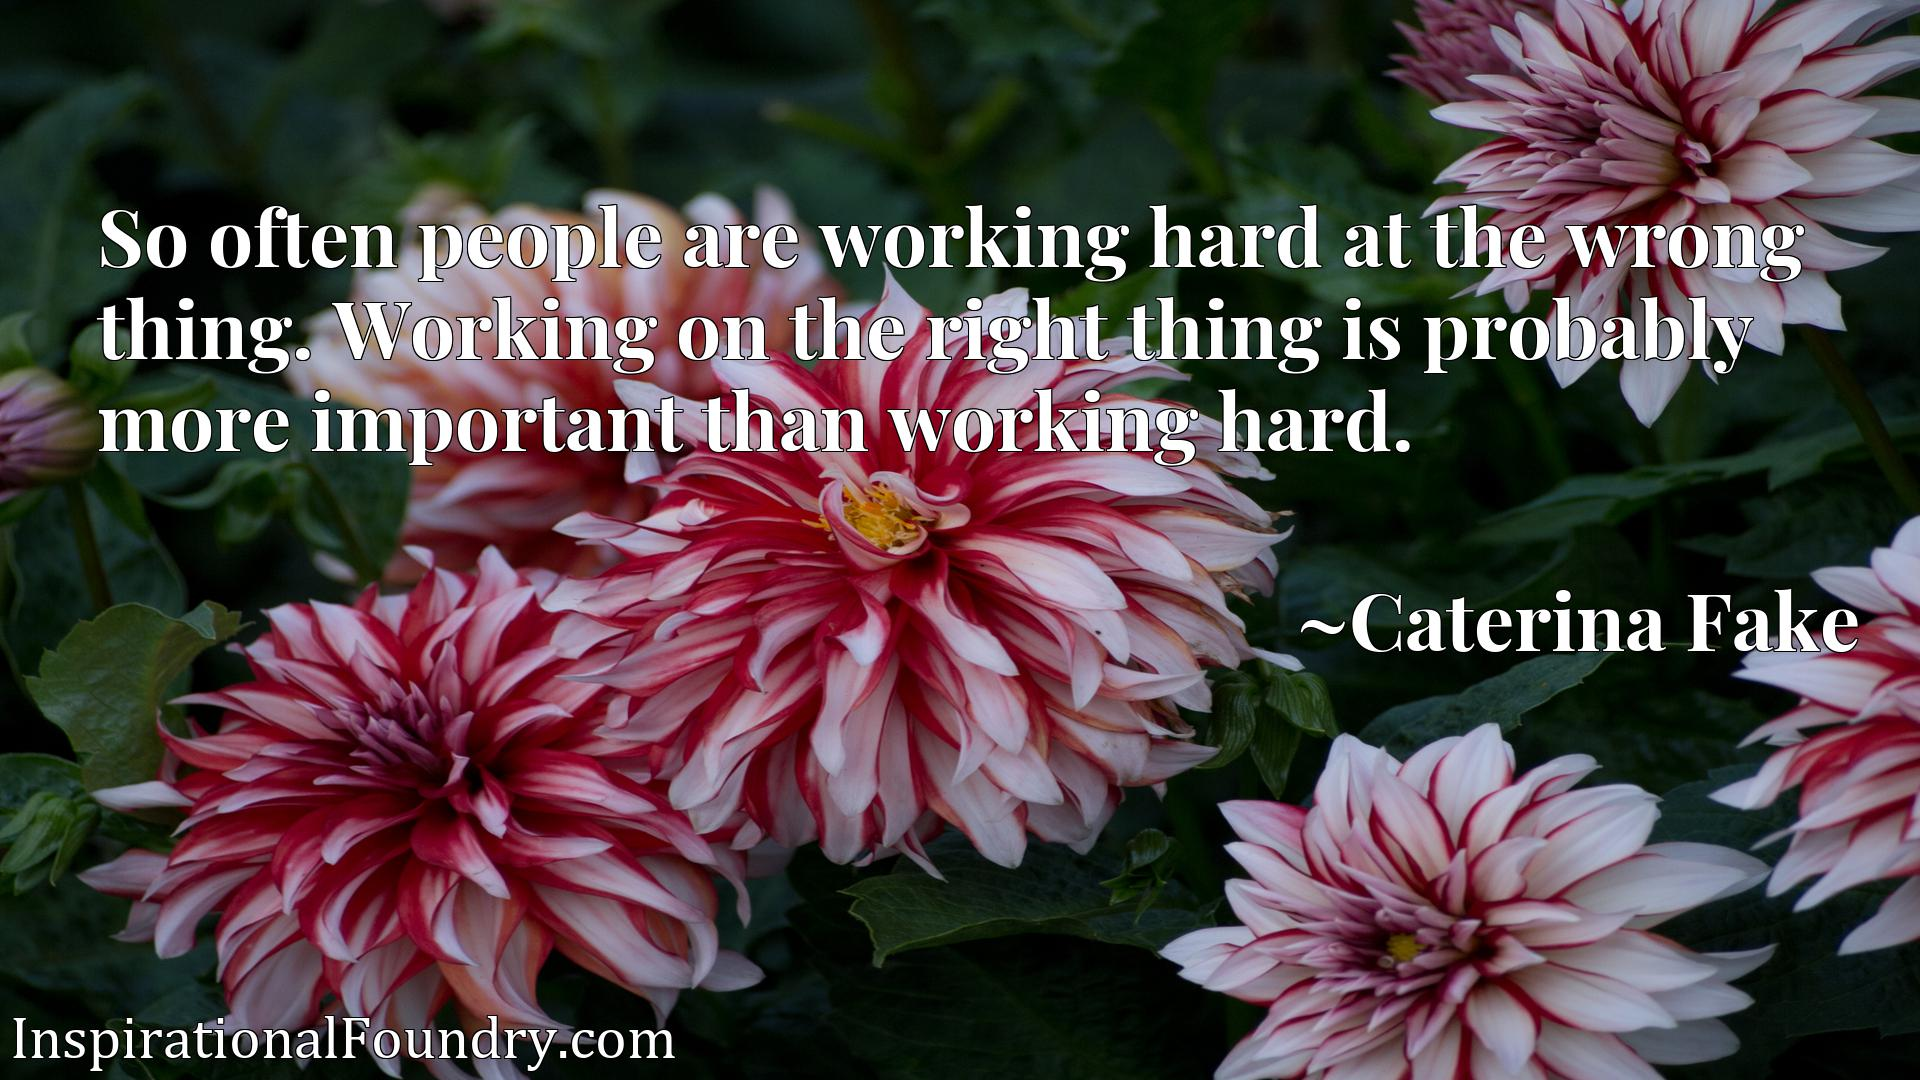 So often people are working hard at the wrong thing. Working on the right thing is probably more important than working hard.